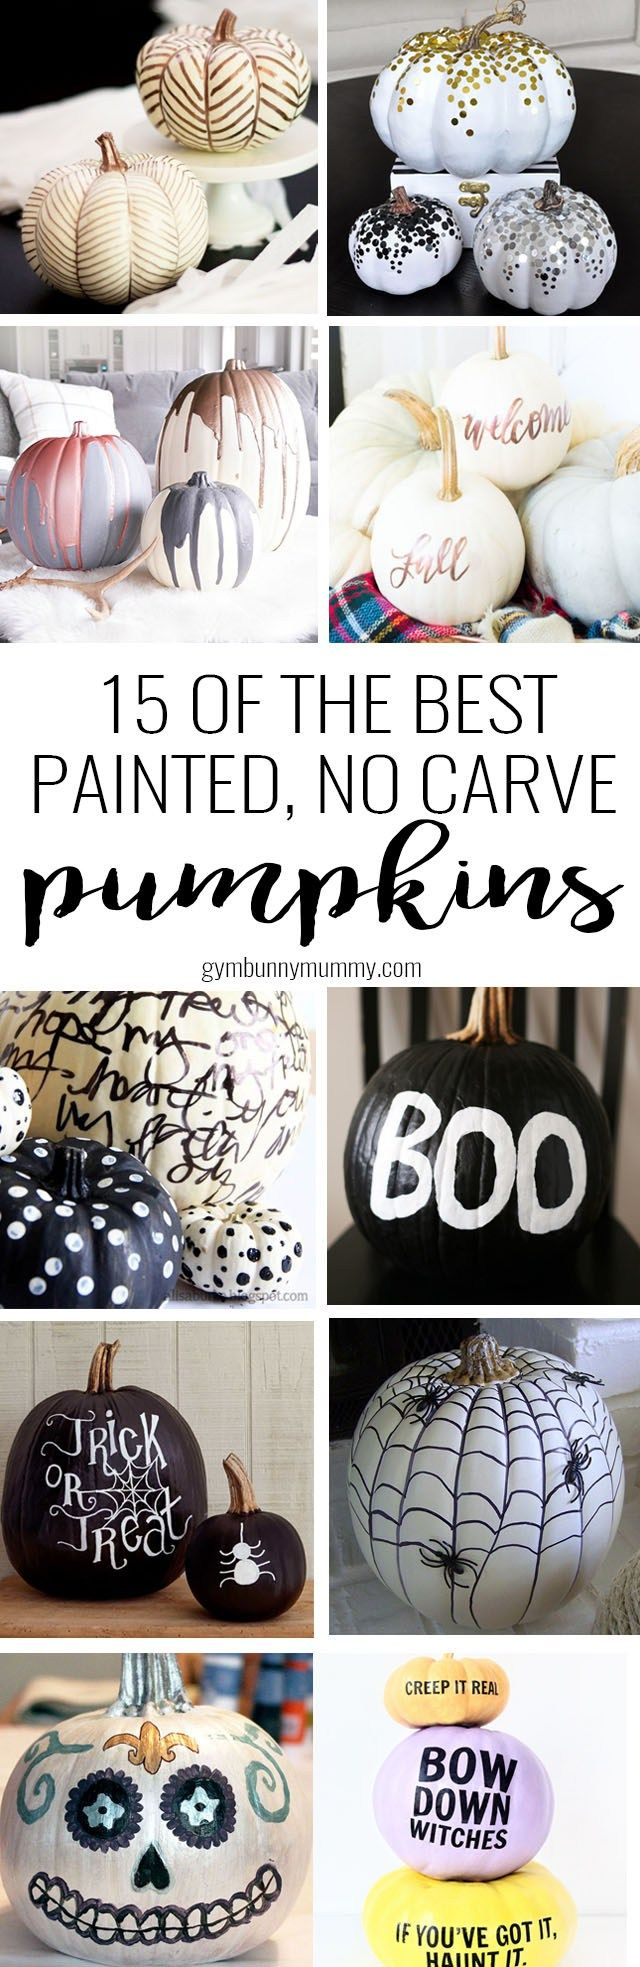 Best 25+ Pumpkin carvings ideas on Pinterest | Halloween pumpkin ...